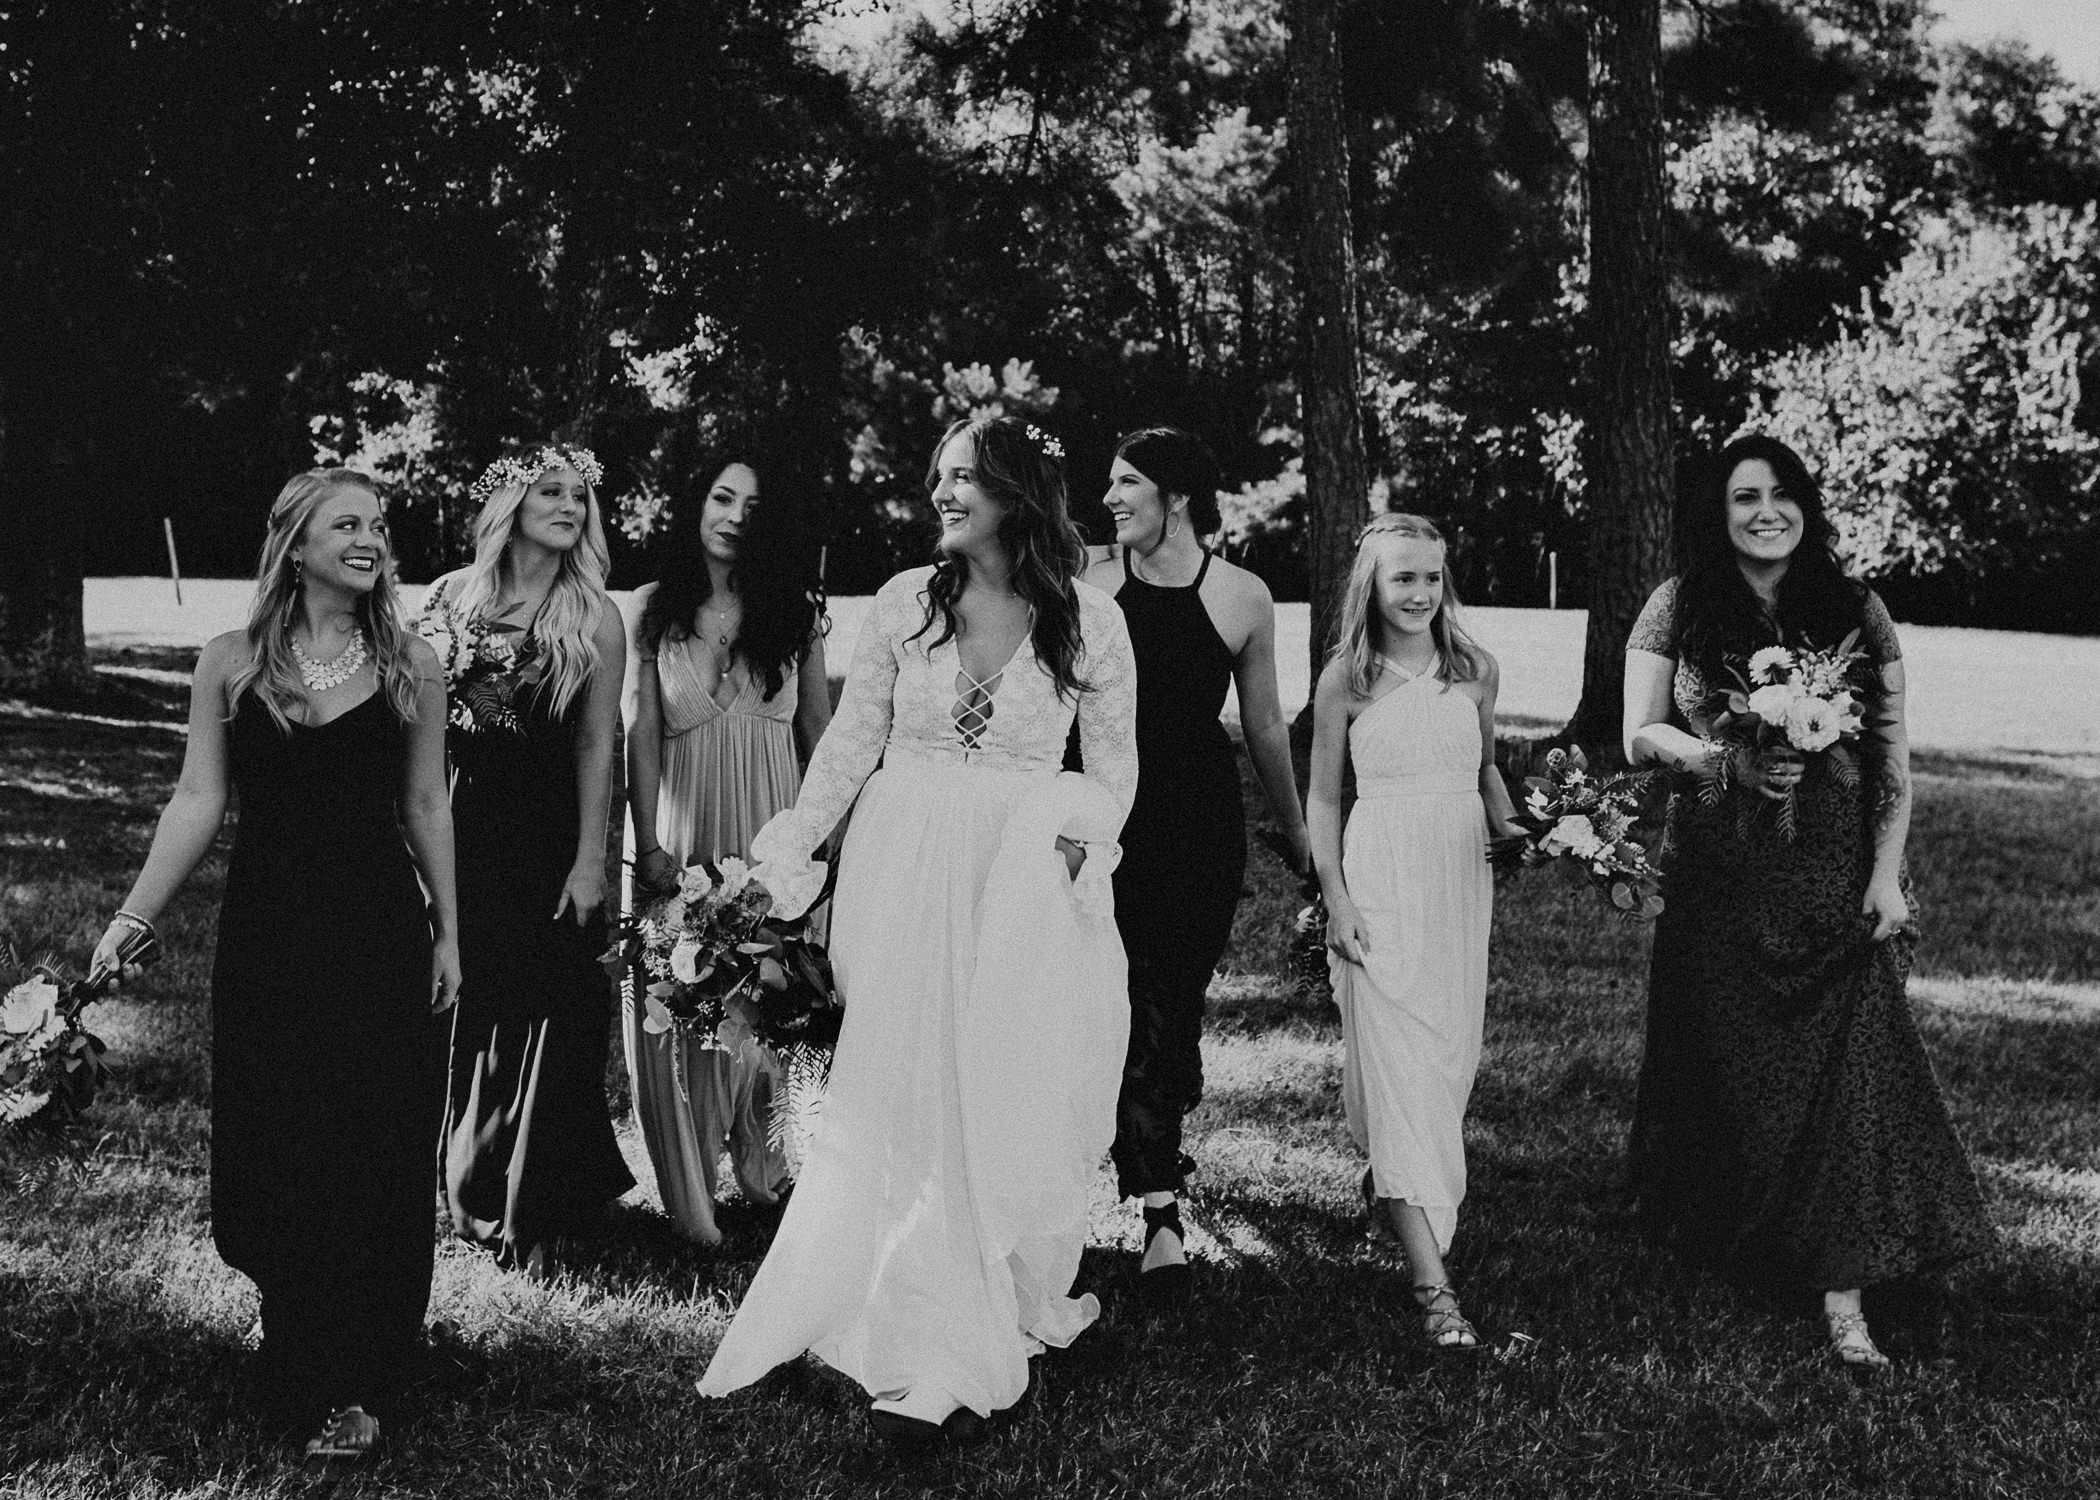 88 - Wedding bride and bridesmaids portraits : Atlanta wedding photographer .jpg